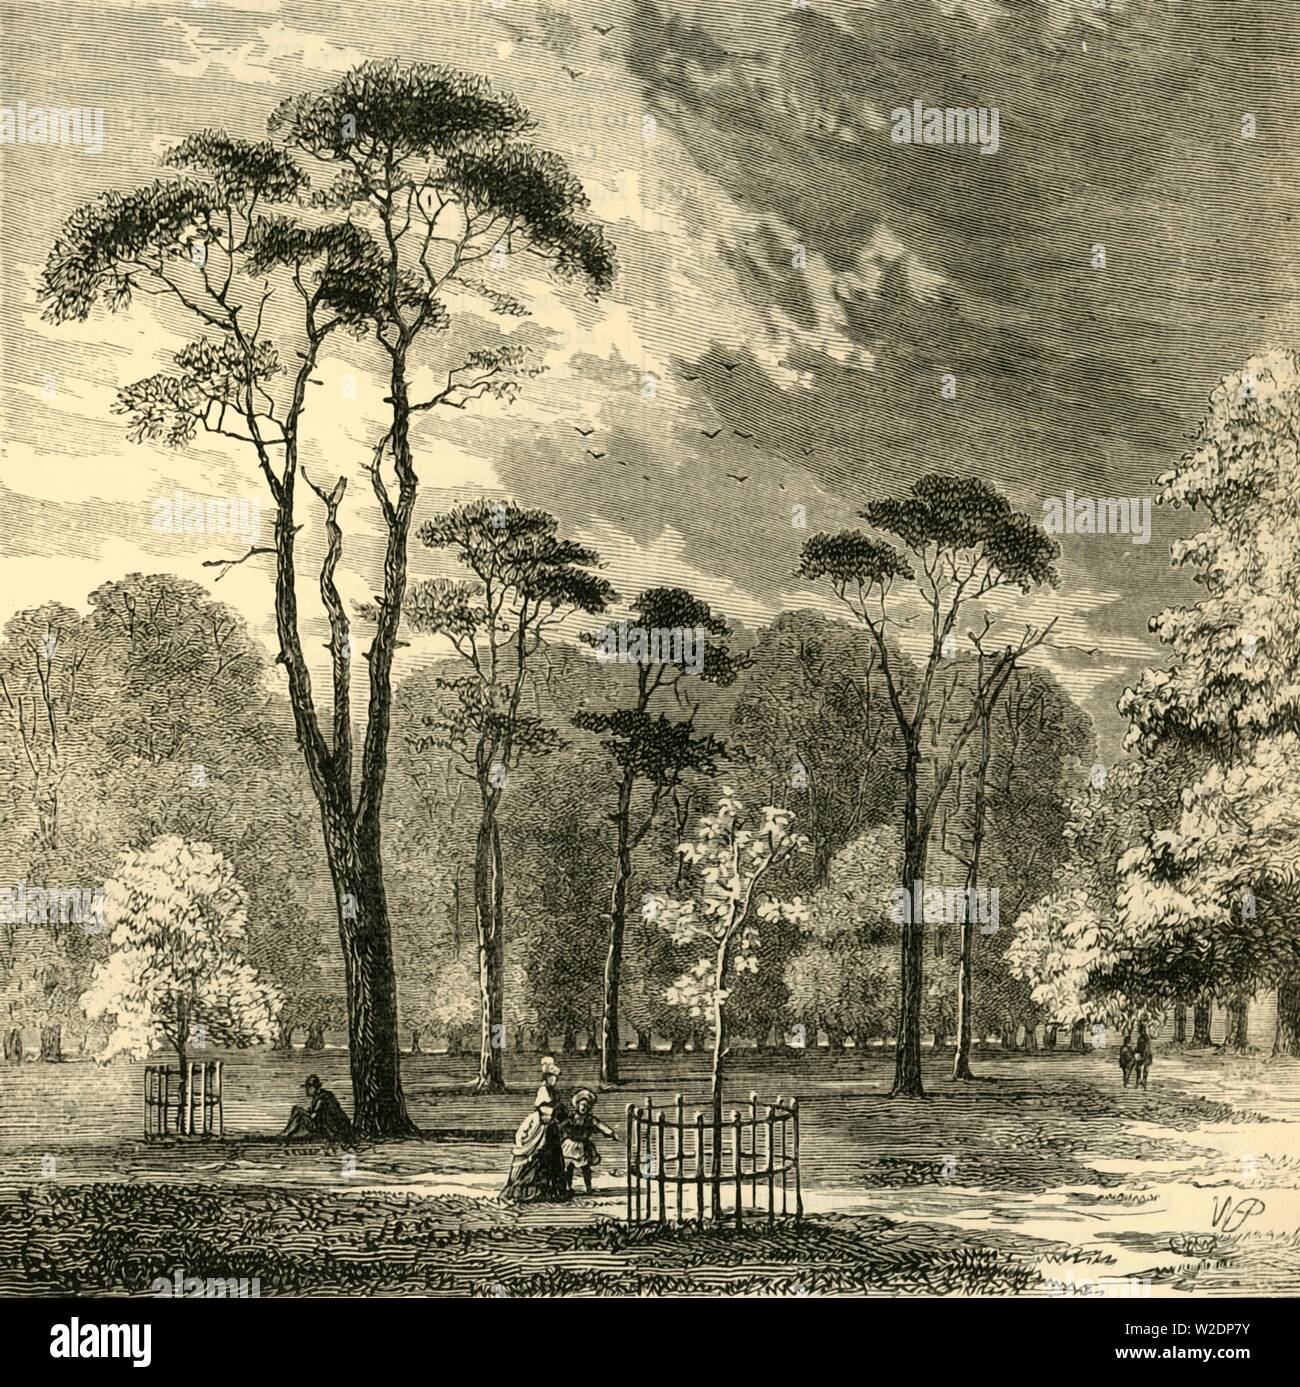 """'The Scotch Firs, Kensington Gardens', c1876. Scots pines grow in Kensington Gardens, once private gardens of Kensington Palace,, originally created by Henry VIII in 1536 for use as a hunting ground,  Queen Caroline requested they be separated from Hyde Park in 1728.  From """"Old and New London: A Narrative of Its History, Its People, and Its Places. The Western and Northern Studies"""", by Edward Walford. [Cassell, Petter, Galpin & Co., London, Paris & New York] - Stock Image"""